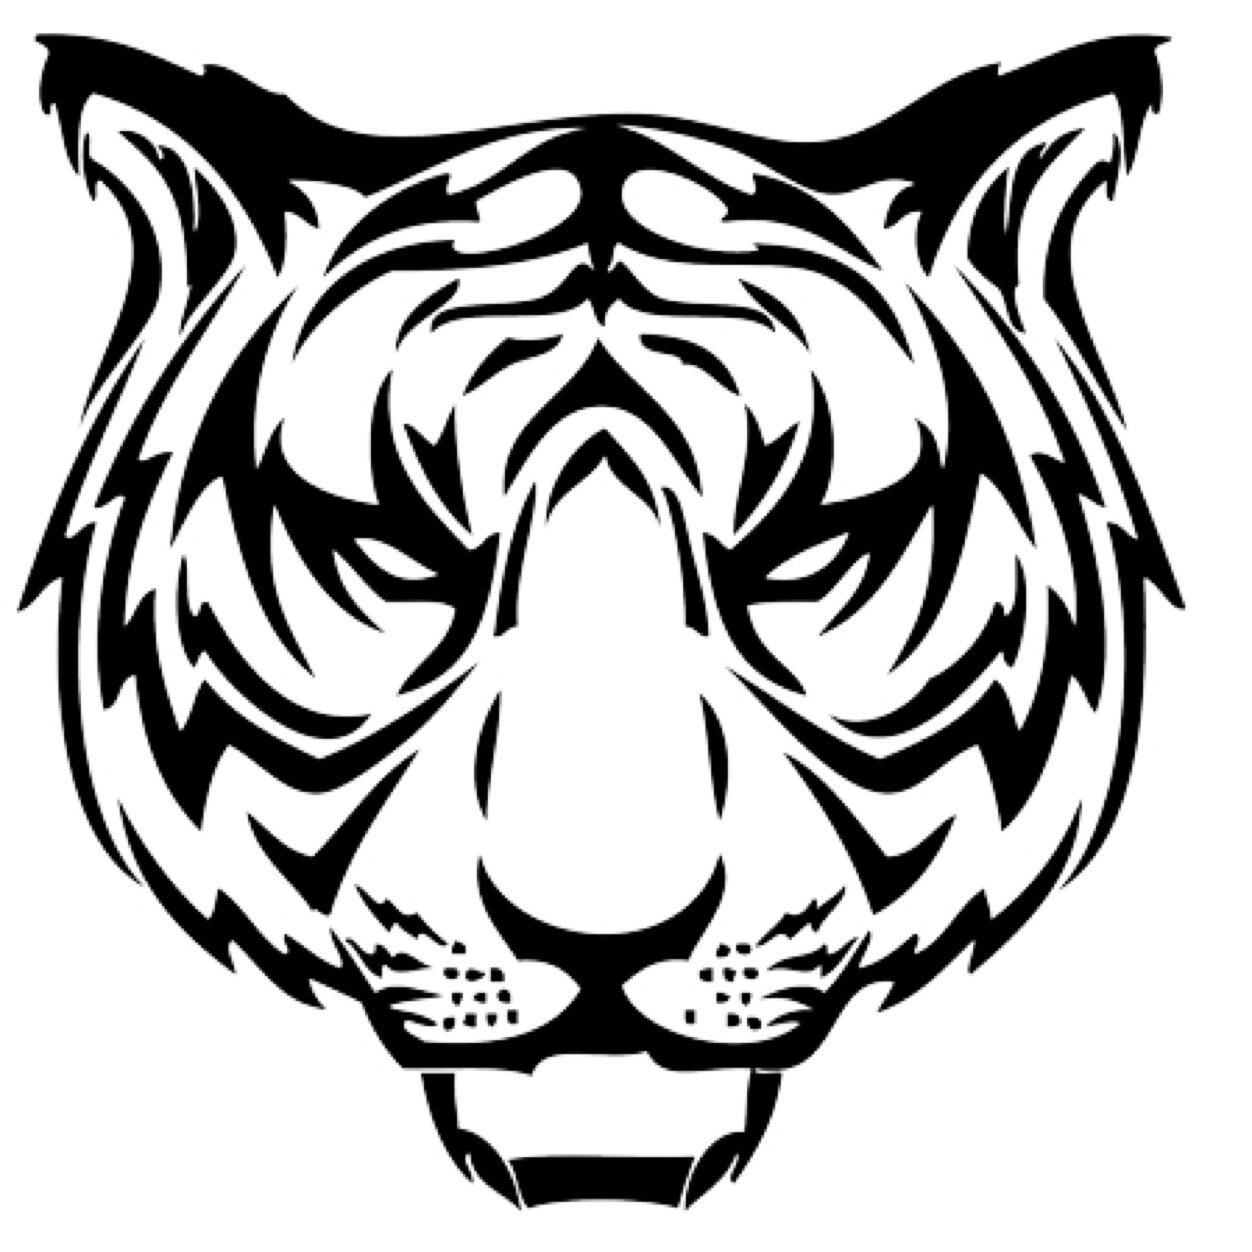 Tiger clipart face. Silhouette at getdrawings com